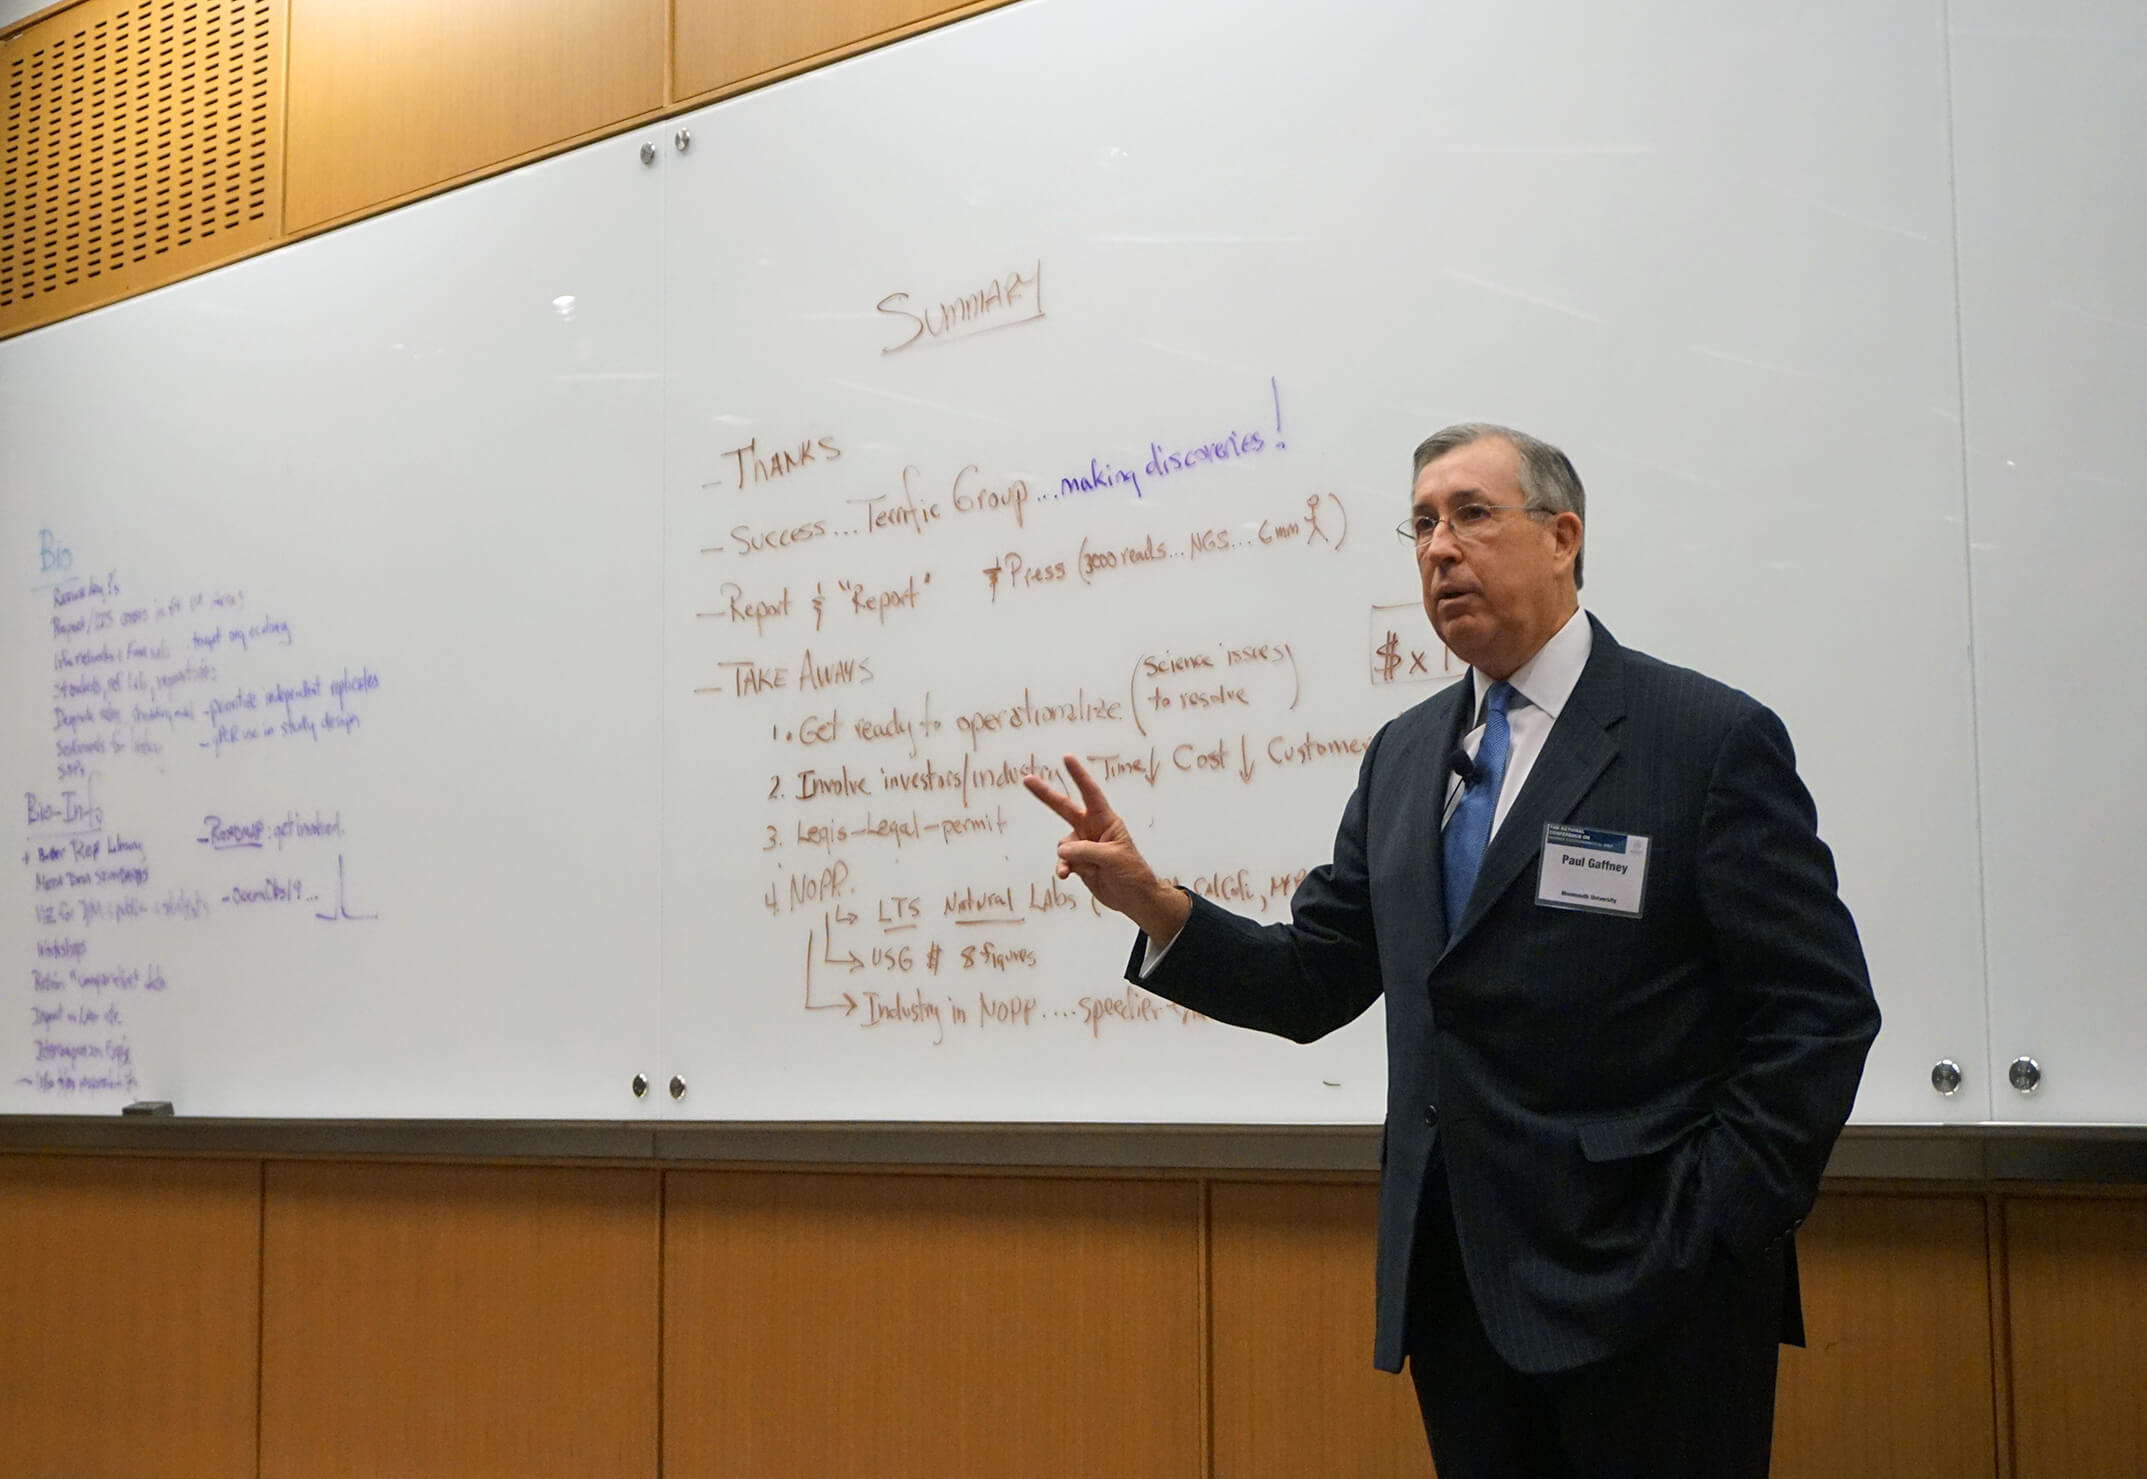 Former Monmouth University President Paul Gaffney speaks at National Conference on Marine Environmental DNA